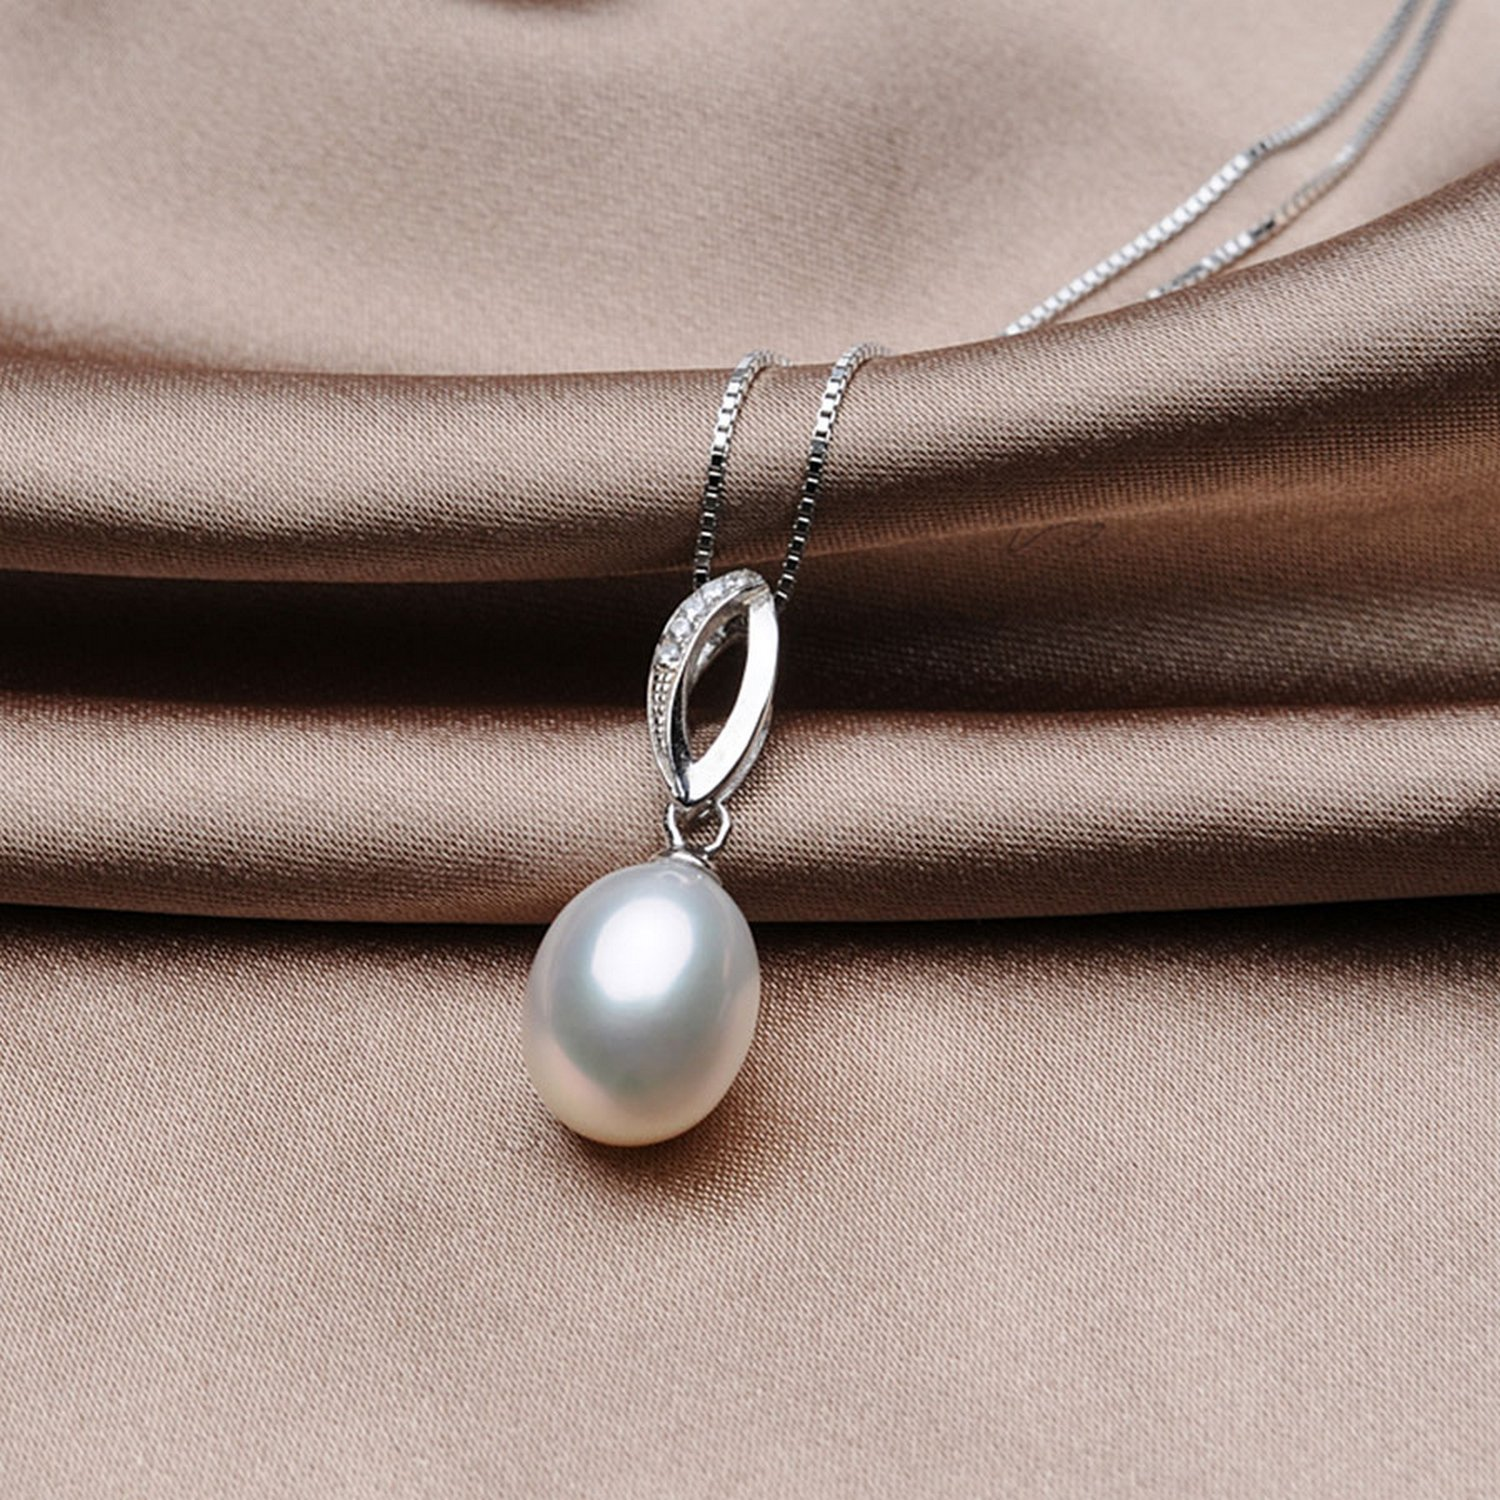 MMC White Pearl Chain Silver Pendants Necklaces